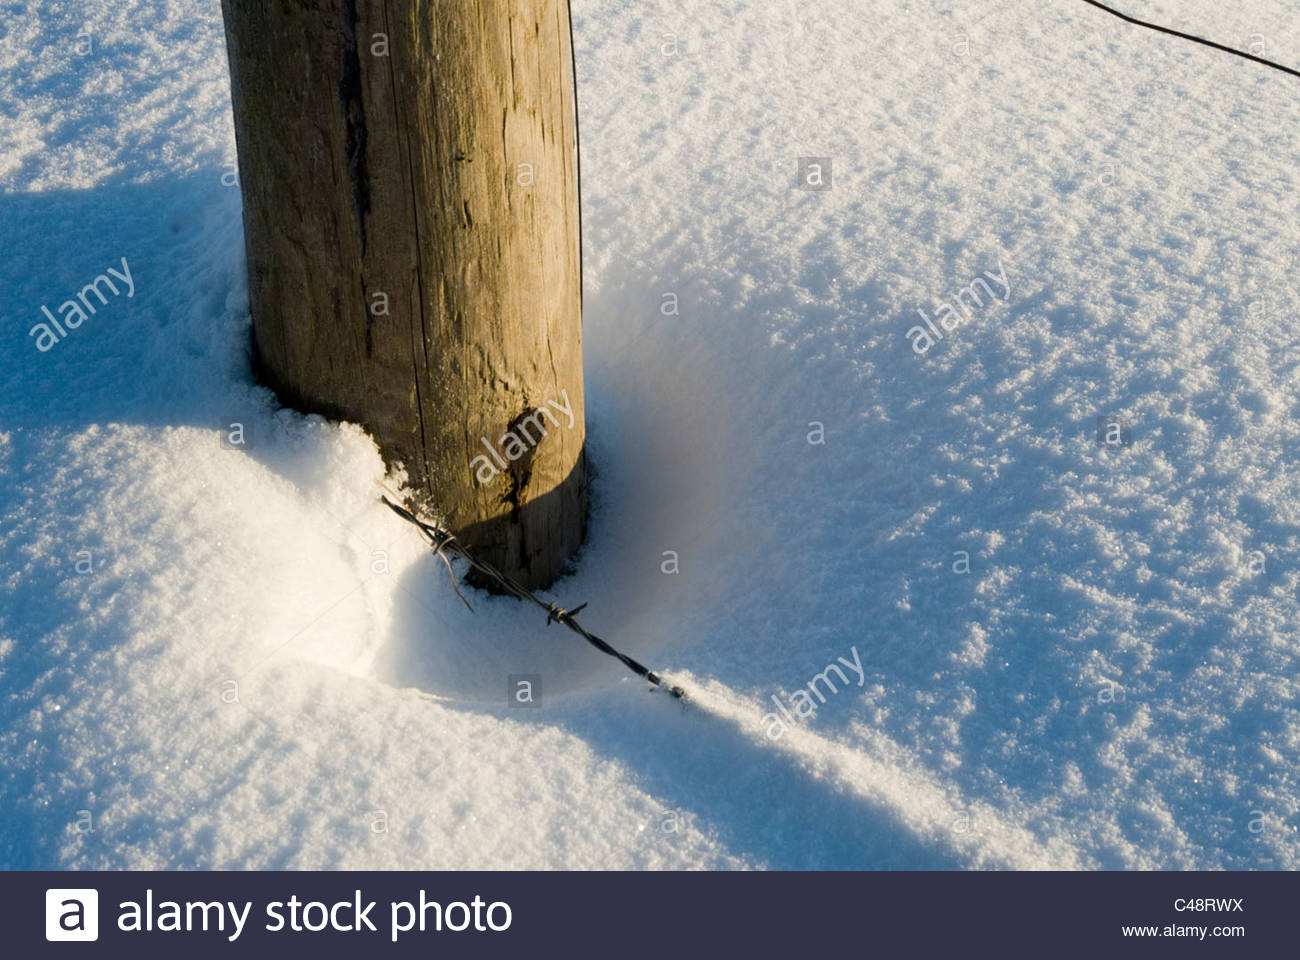 Fence post and snow - Stock Image